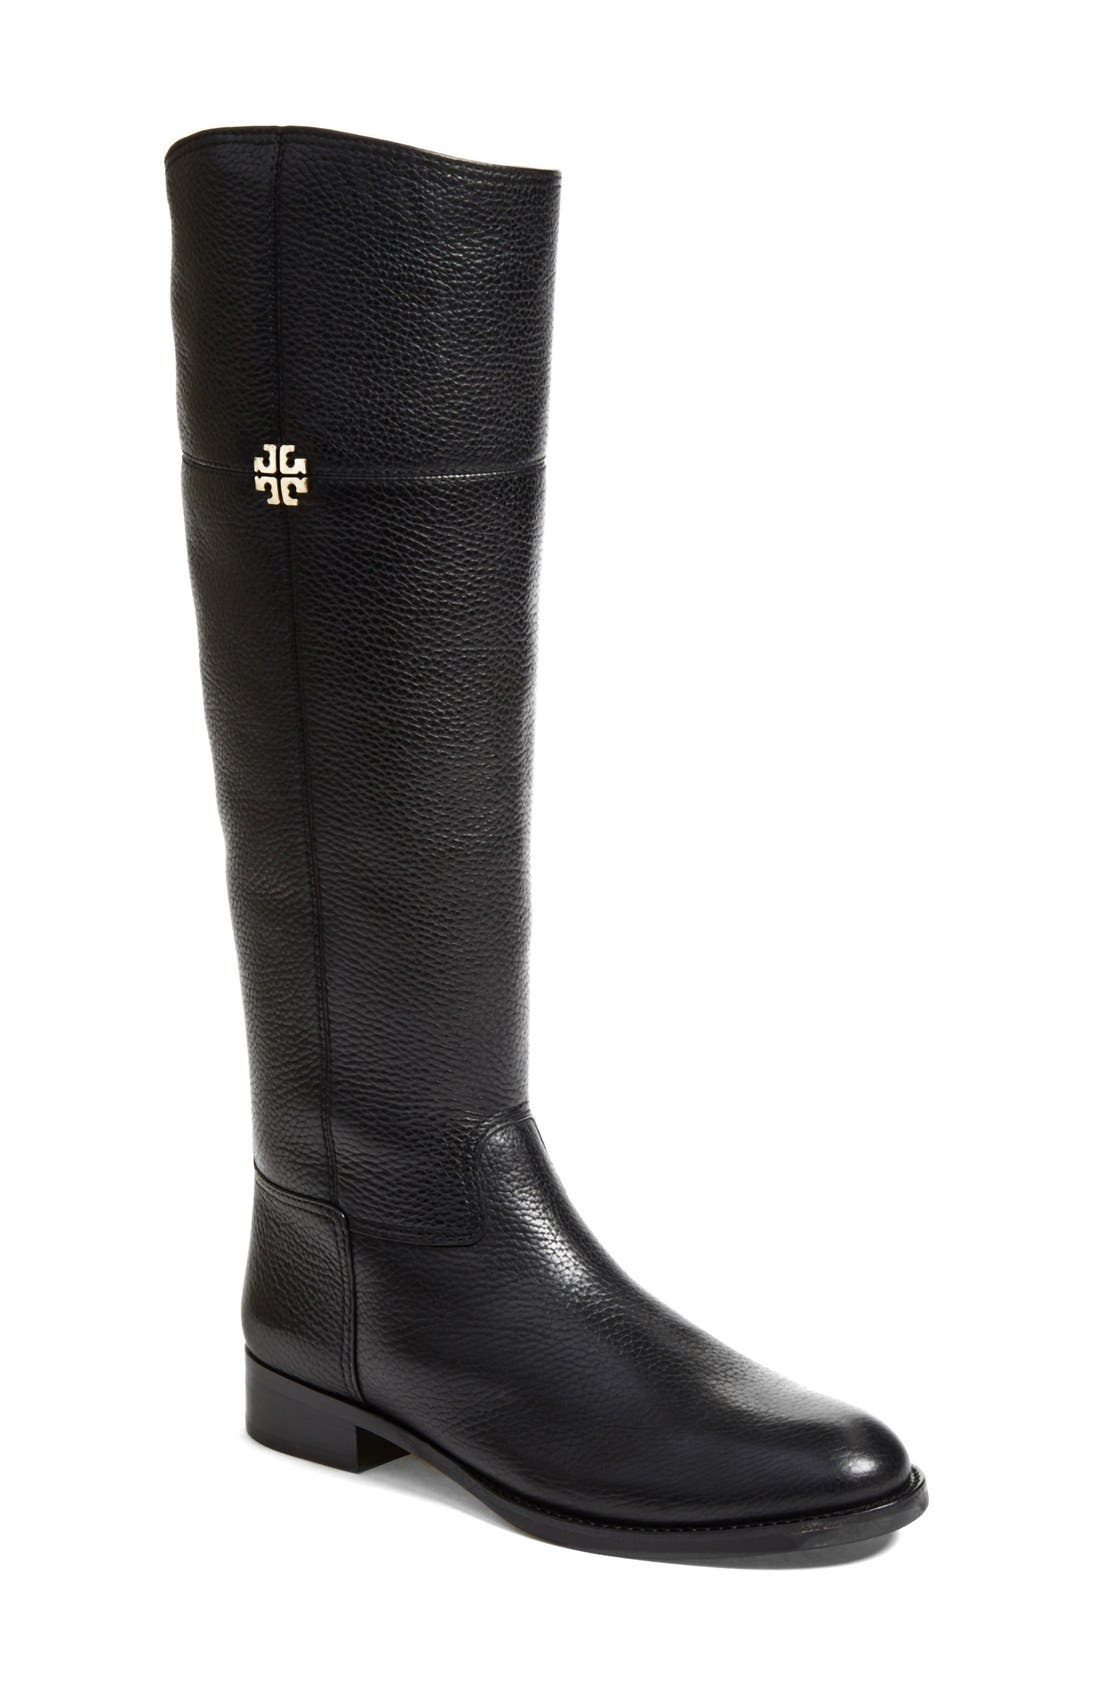 'Jolie' Riding Boot,                         Main,                         color, Black Tumbled Leather